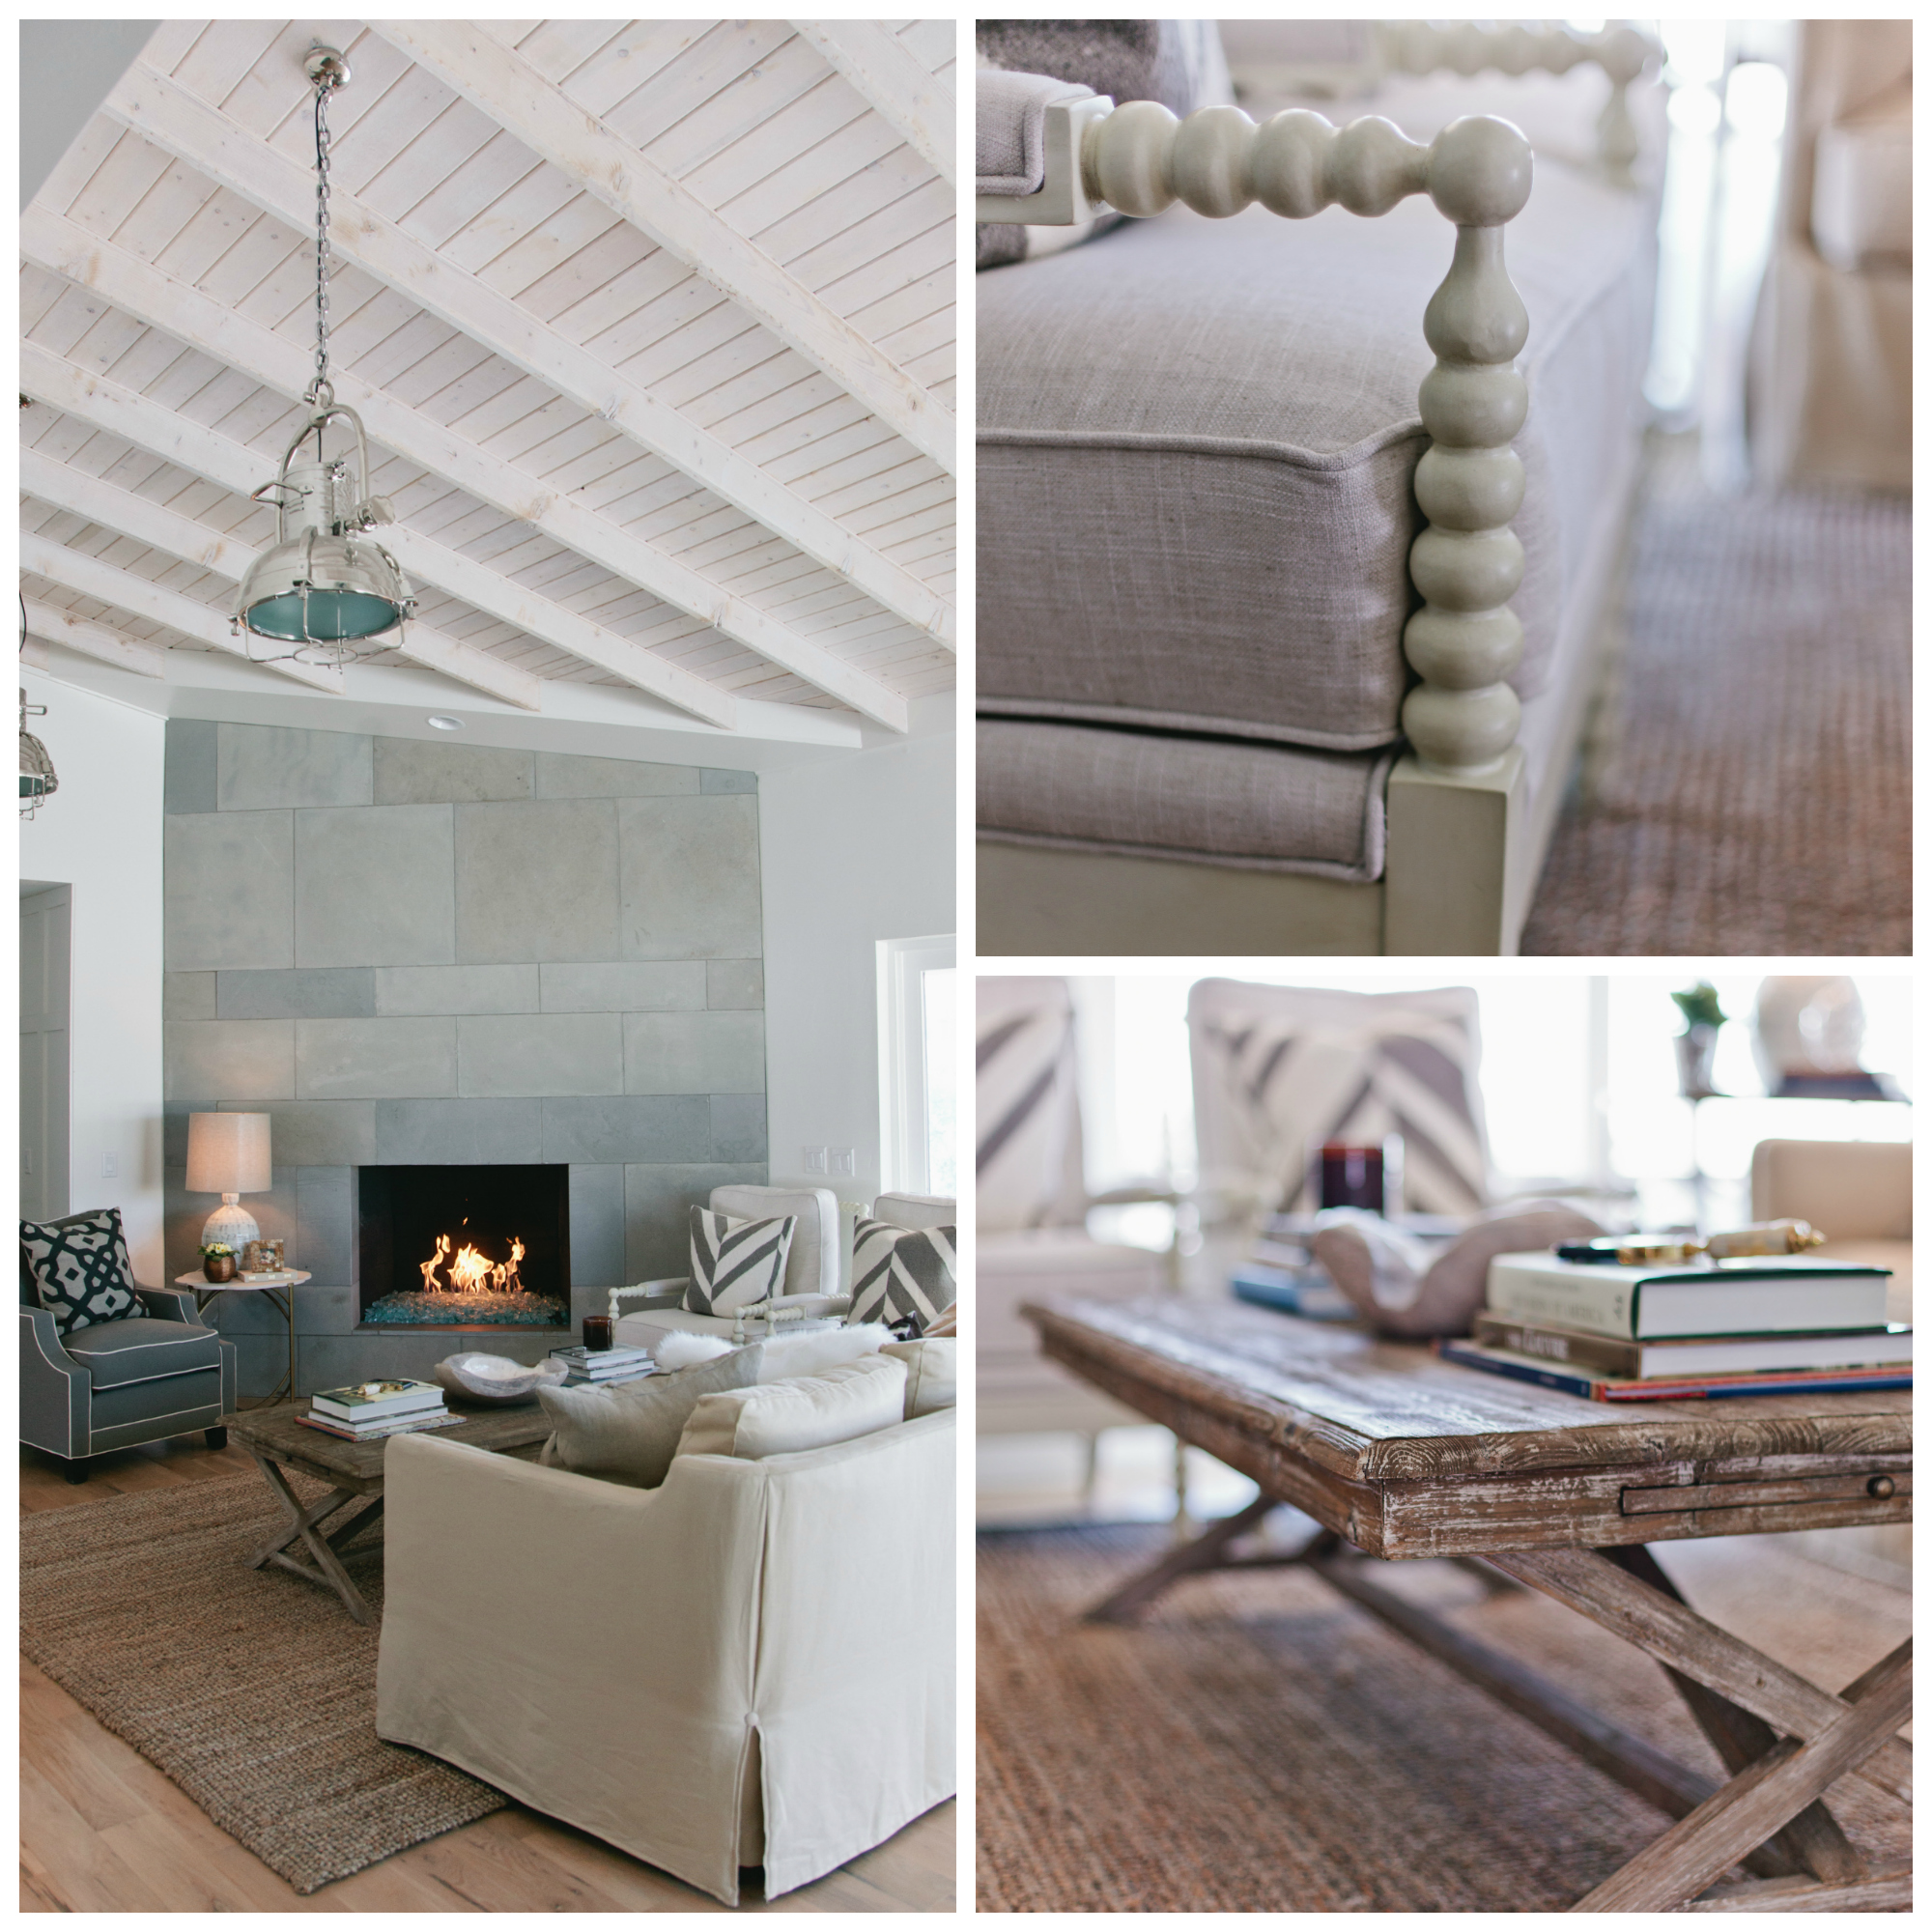 If I had to pick a theme for my house, I would label it as  Rustic Modern Industrial  . There are lots of natural elements like slate, white oak, glass and steel combined with distressed and casual furniture pieces. A textured rug, spooled accent chairs, and a coffee table that you can put your feet on complete the look.